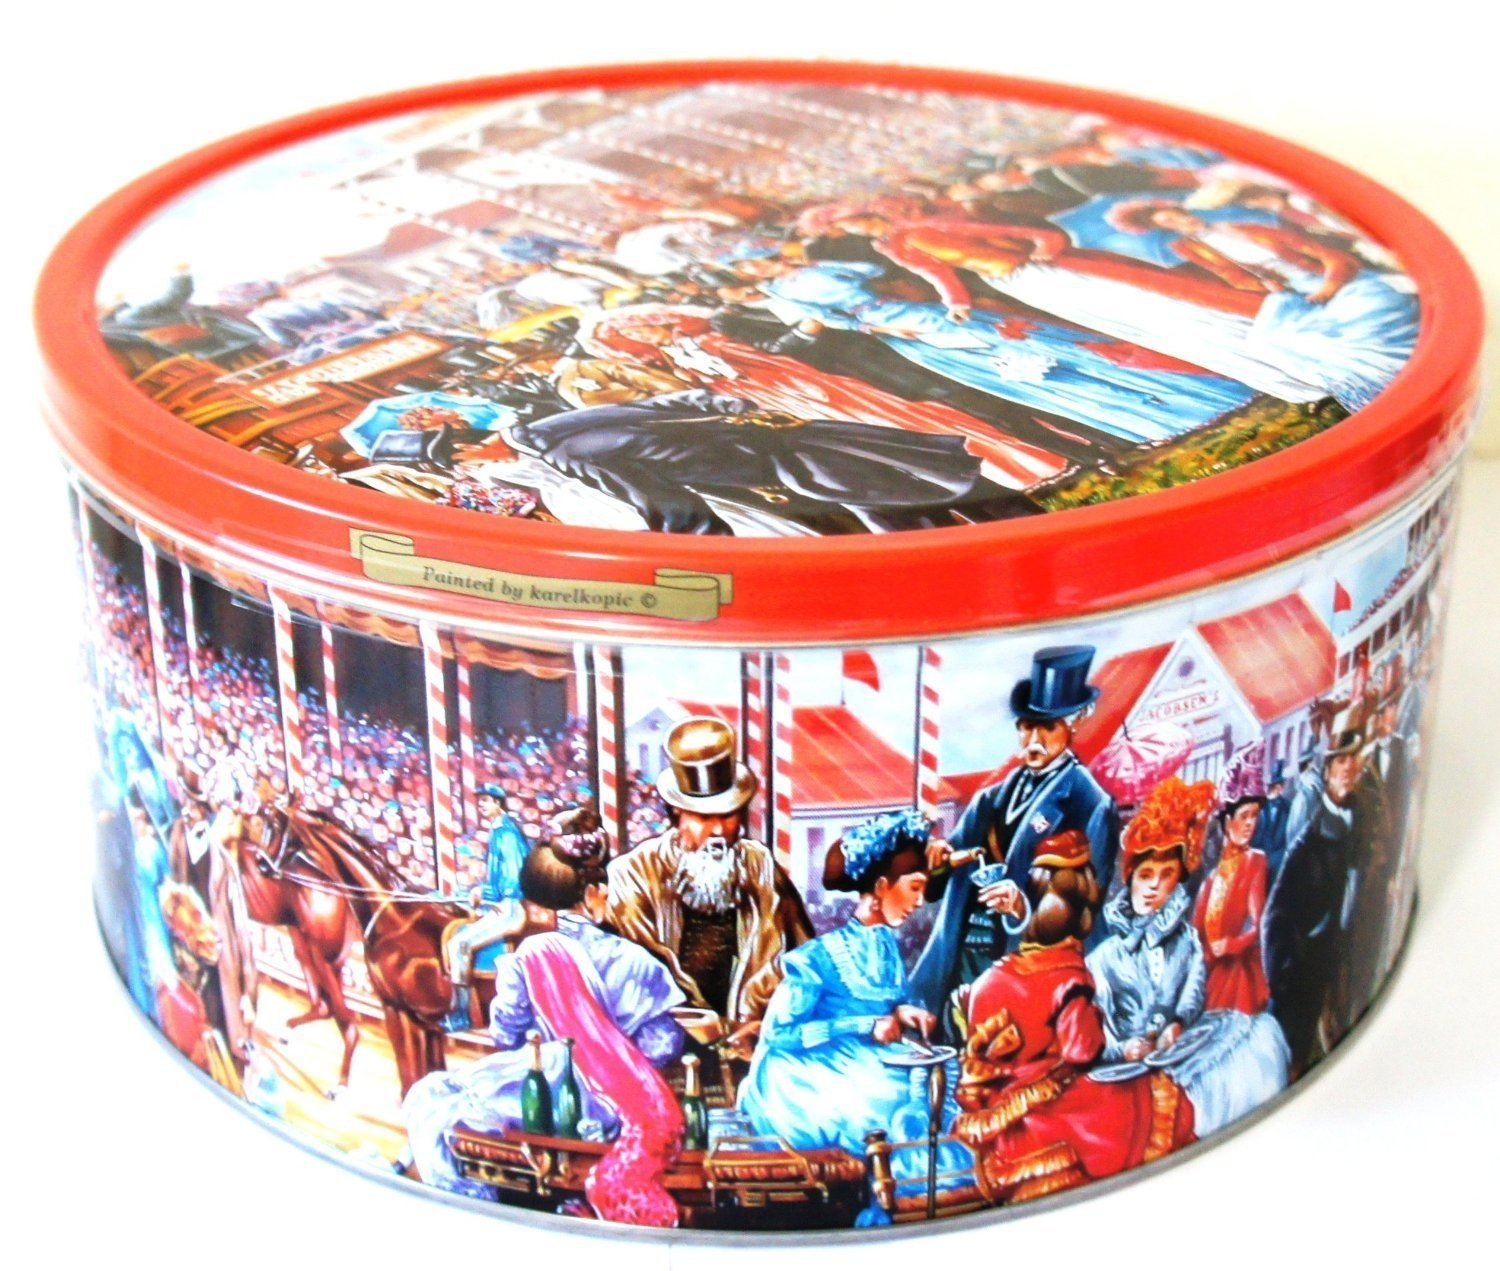 Ind Creations - A Day At The Races - Imported Danish Butter Cookies made by Jacobsen's Bakery Ltd.